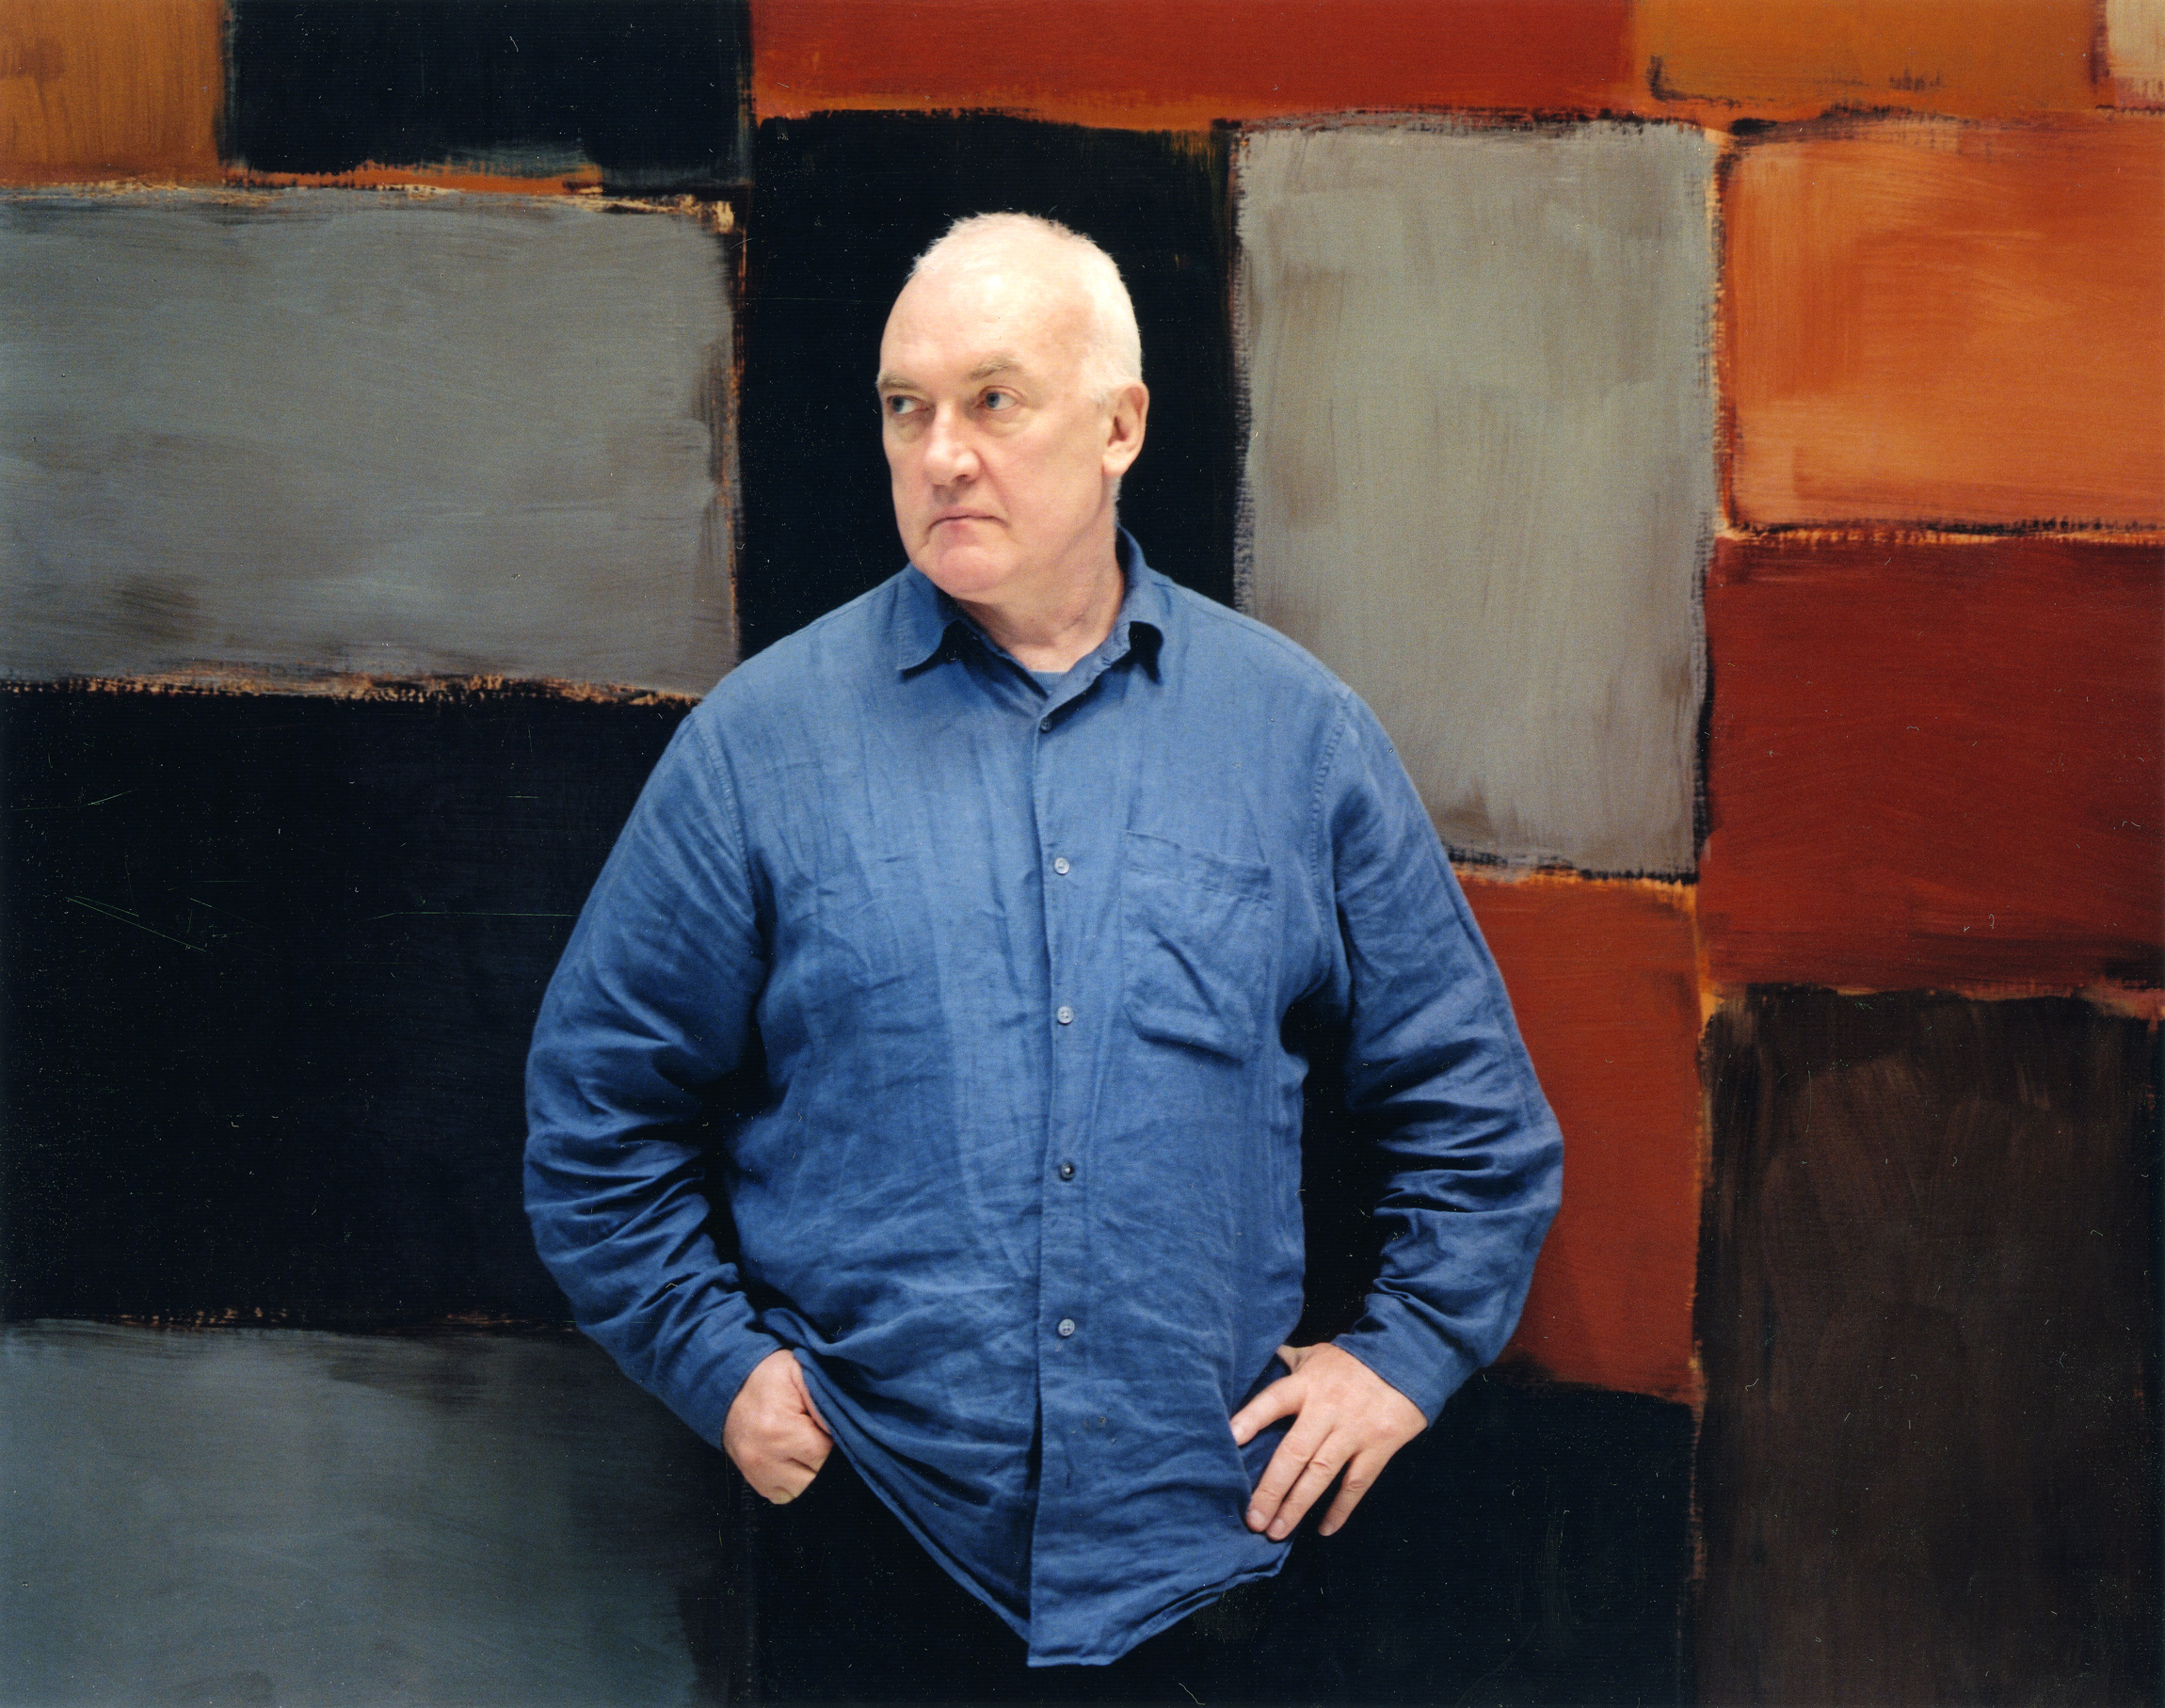 Sean Scully, Selfportrait, © Sean Scully